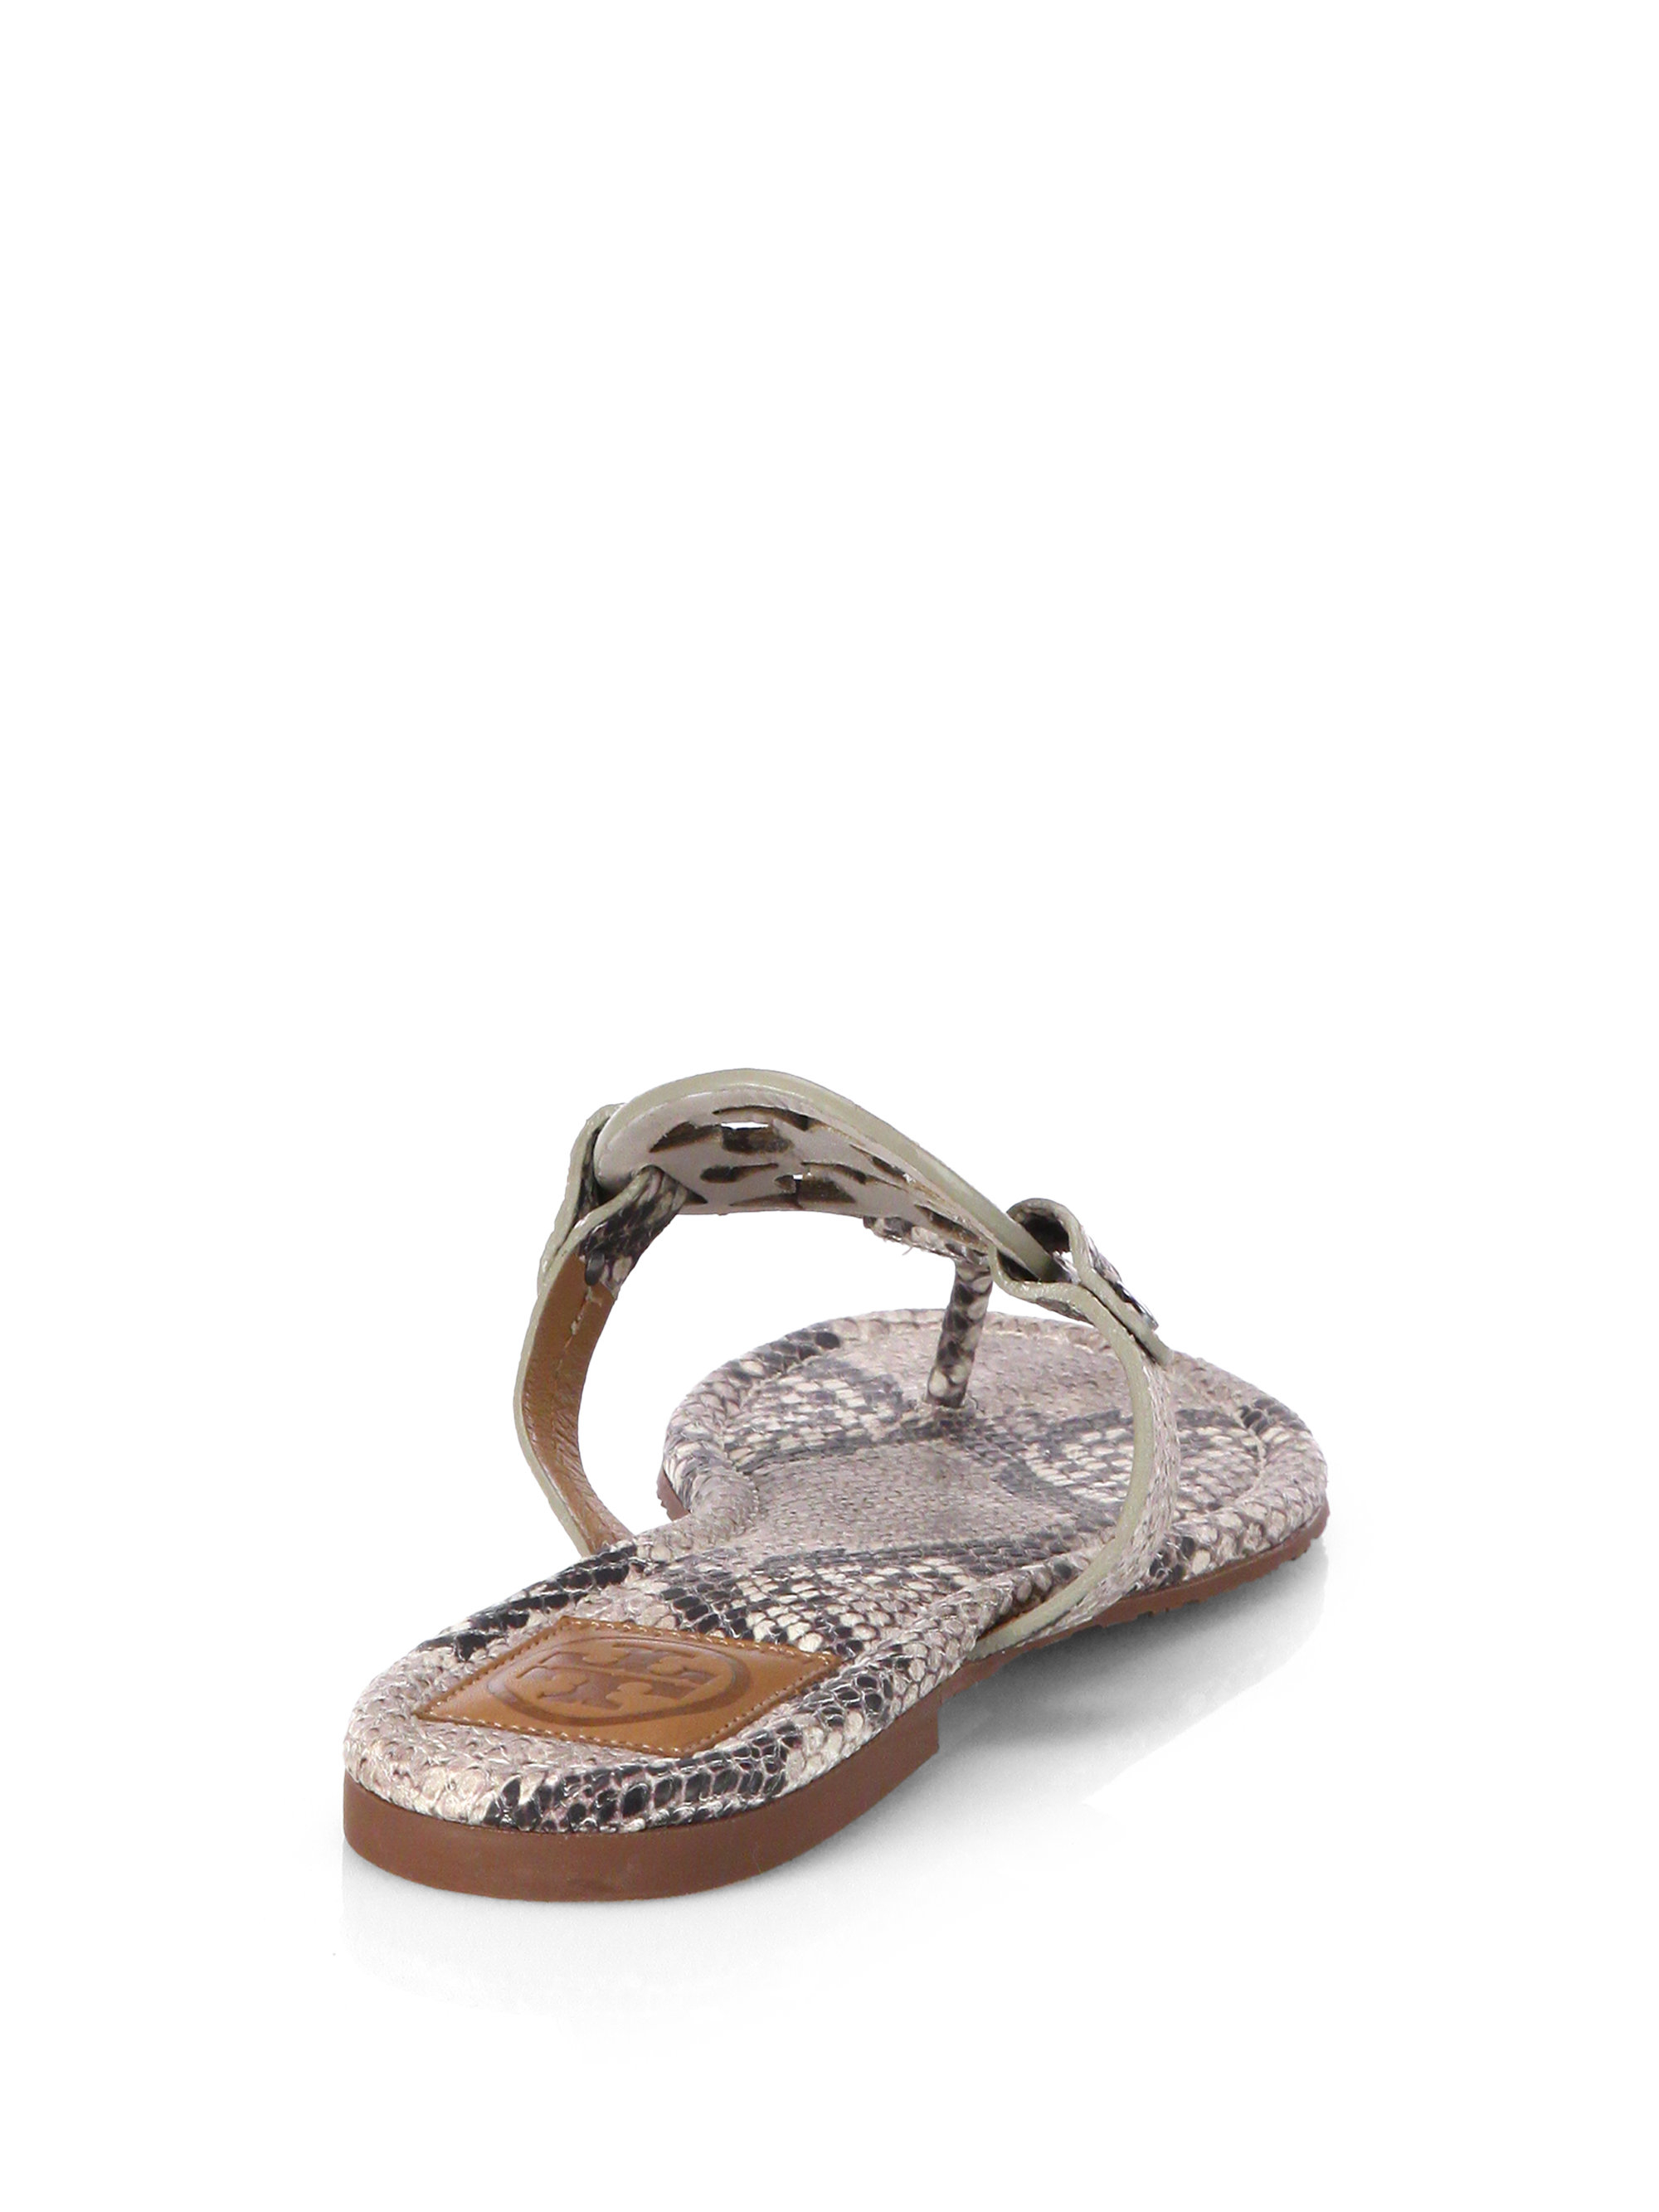 b649a1e7d2a191 Lyst - Tory Burch Miller Snake-Effect Leather Sandals in Natural